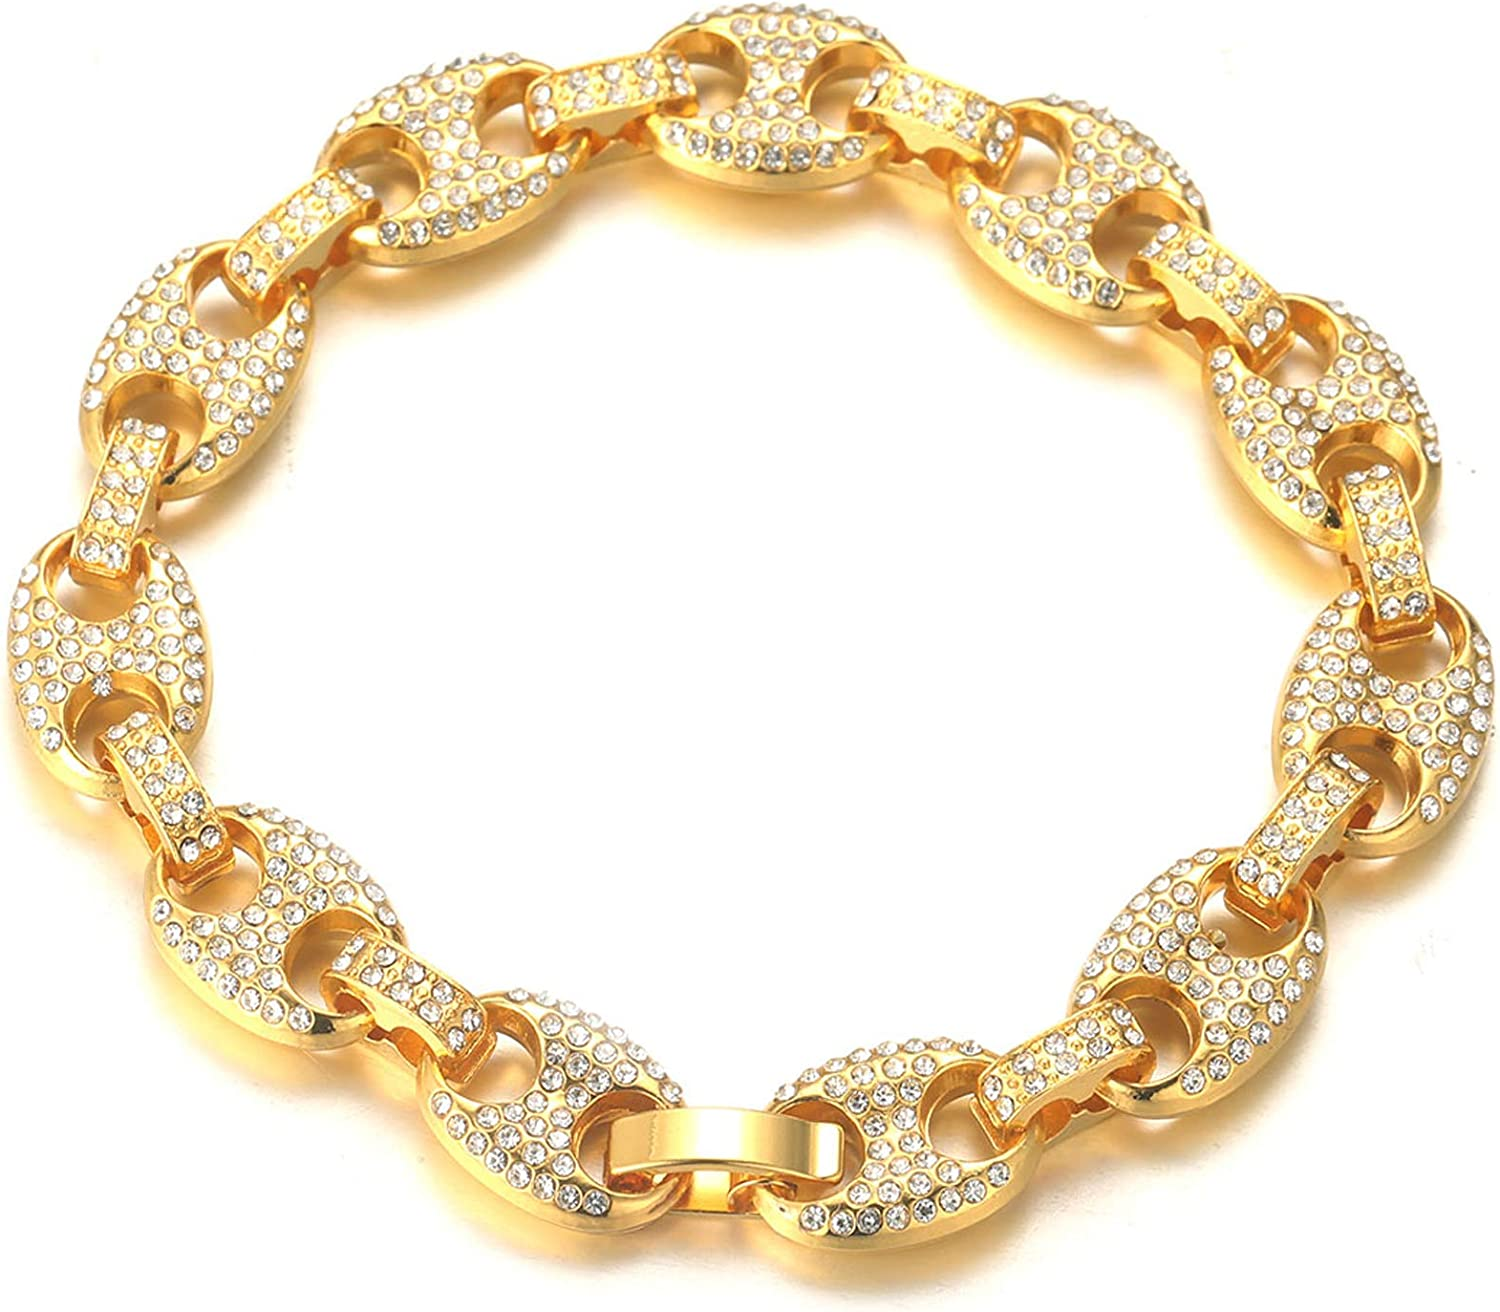 Gold Chain for Men Iced Out,Men's 11MM 18k Real Gold Plated/Platinum White Gold Finish 11MM Miami Cuban Link Coffee Bean Chain Choker Necklace Bracelet,Full Cz Diamond Cut Prong Set,Gift for Him